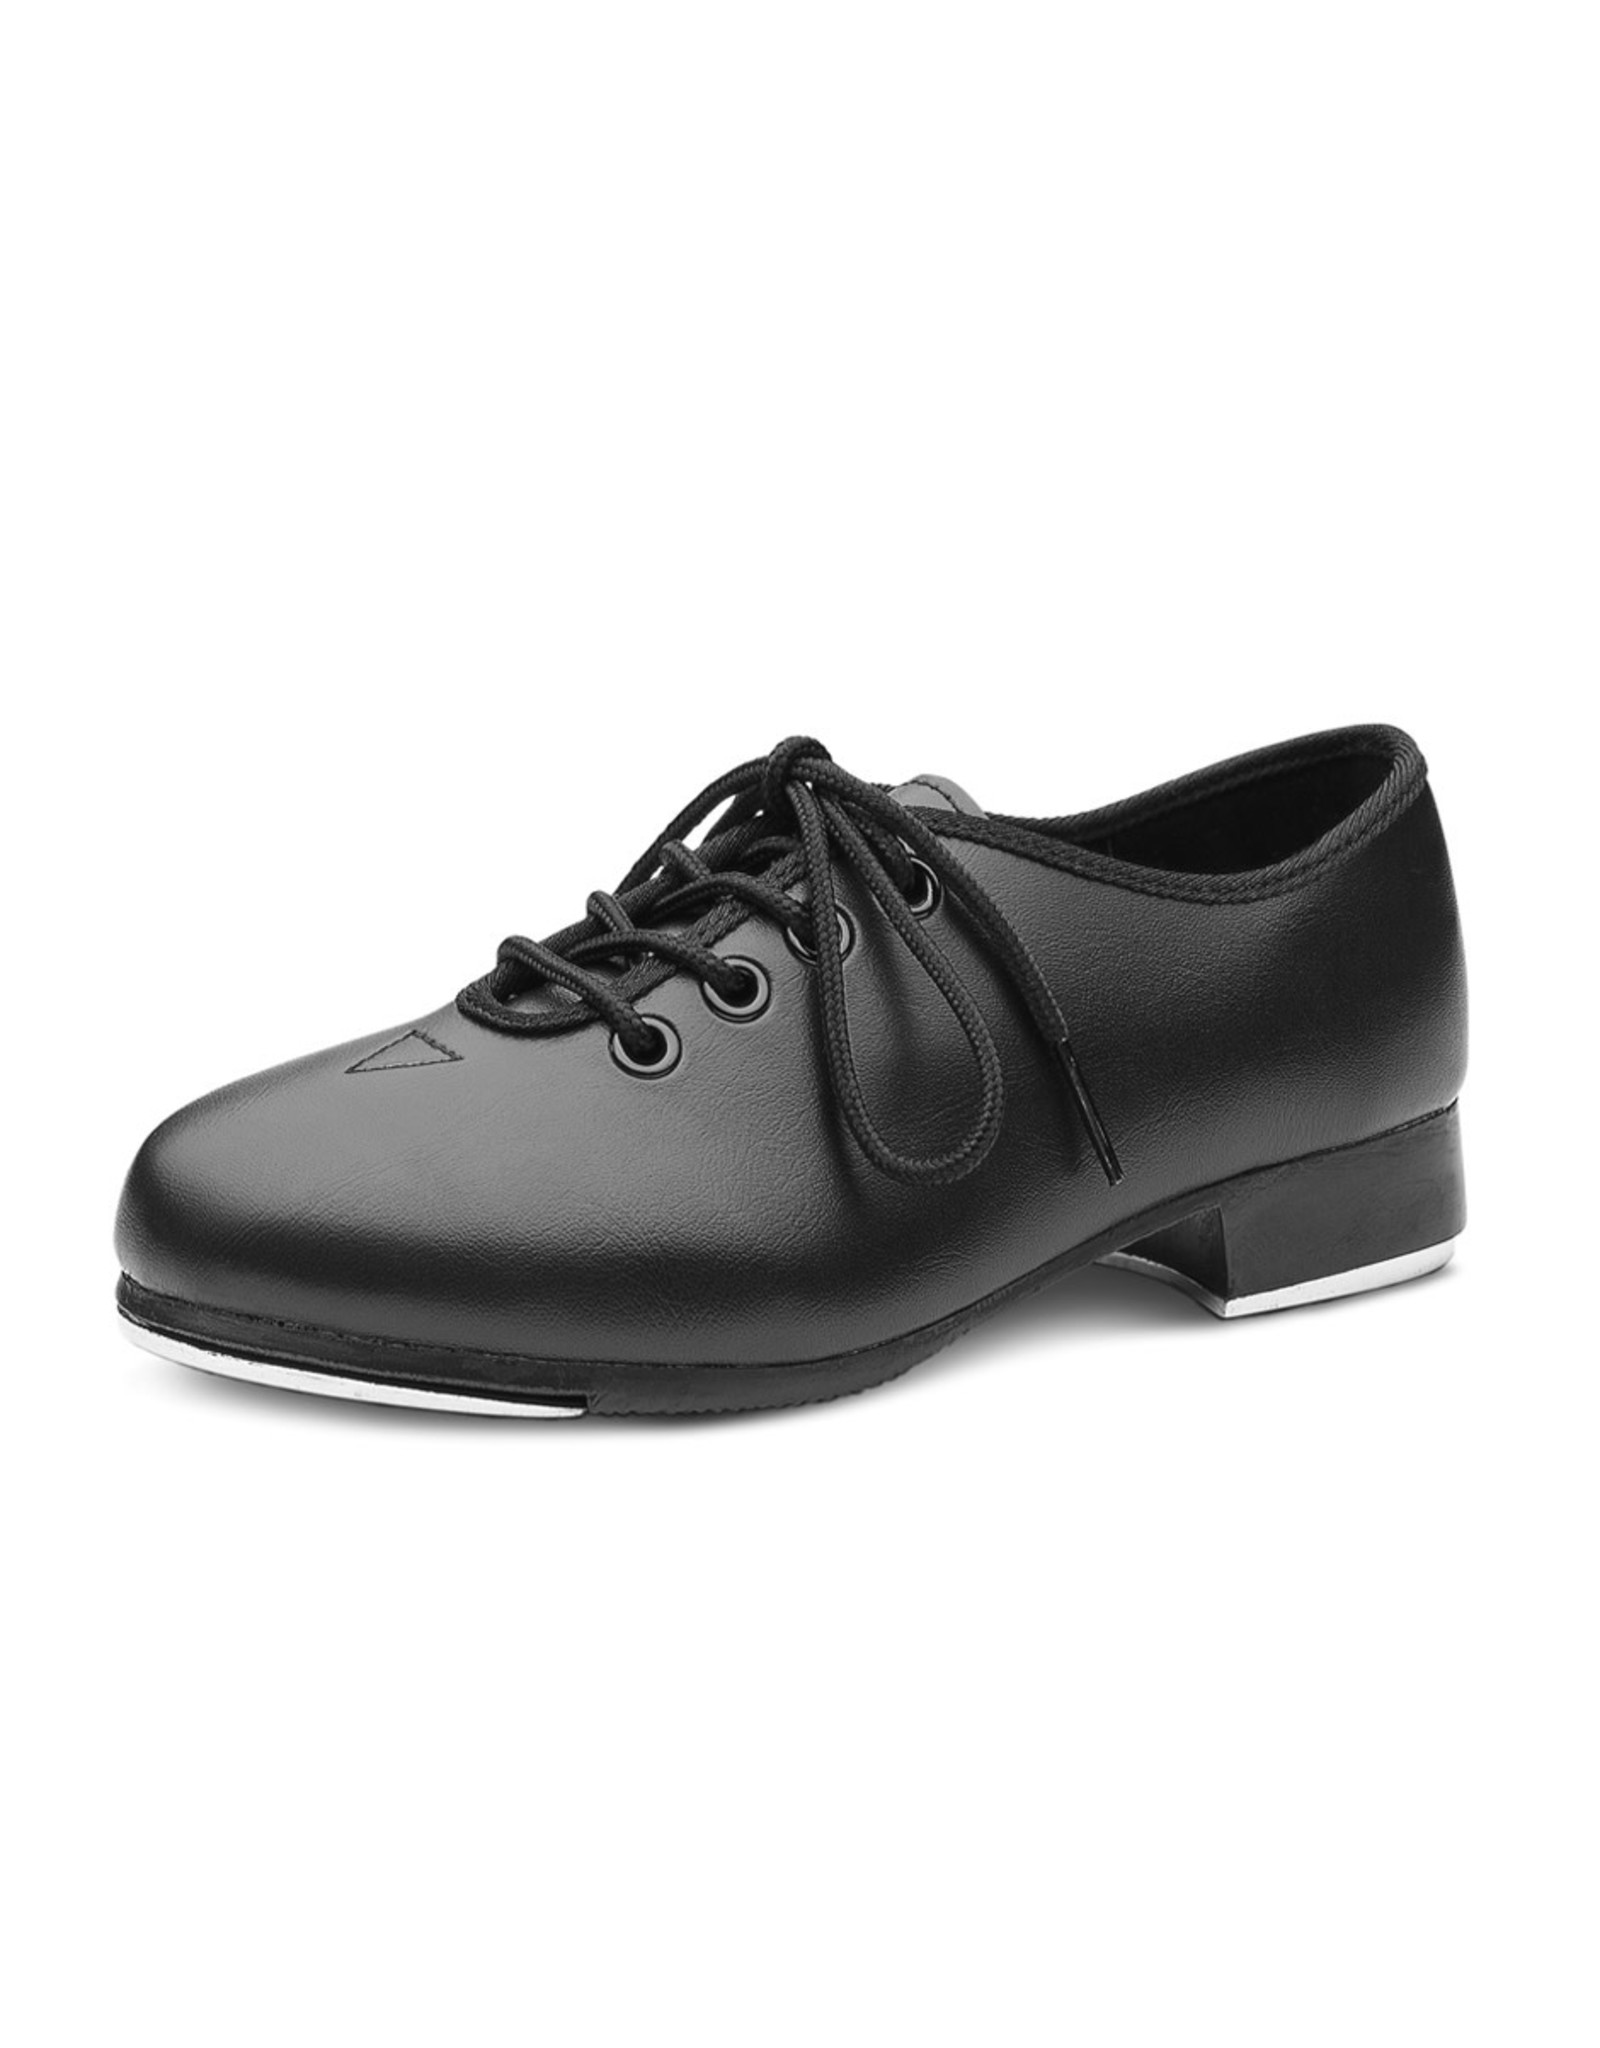 Bloch / Mirella Dance Now Student Jazz Tap (3710G)